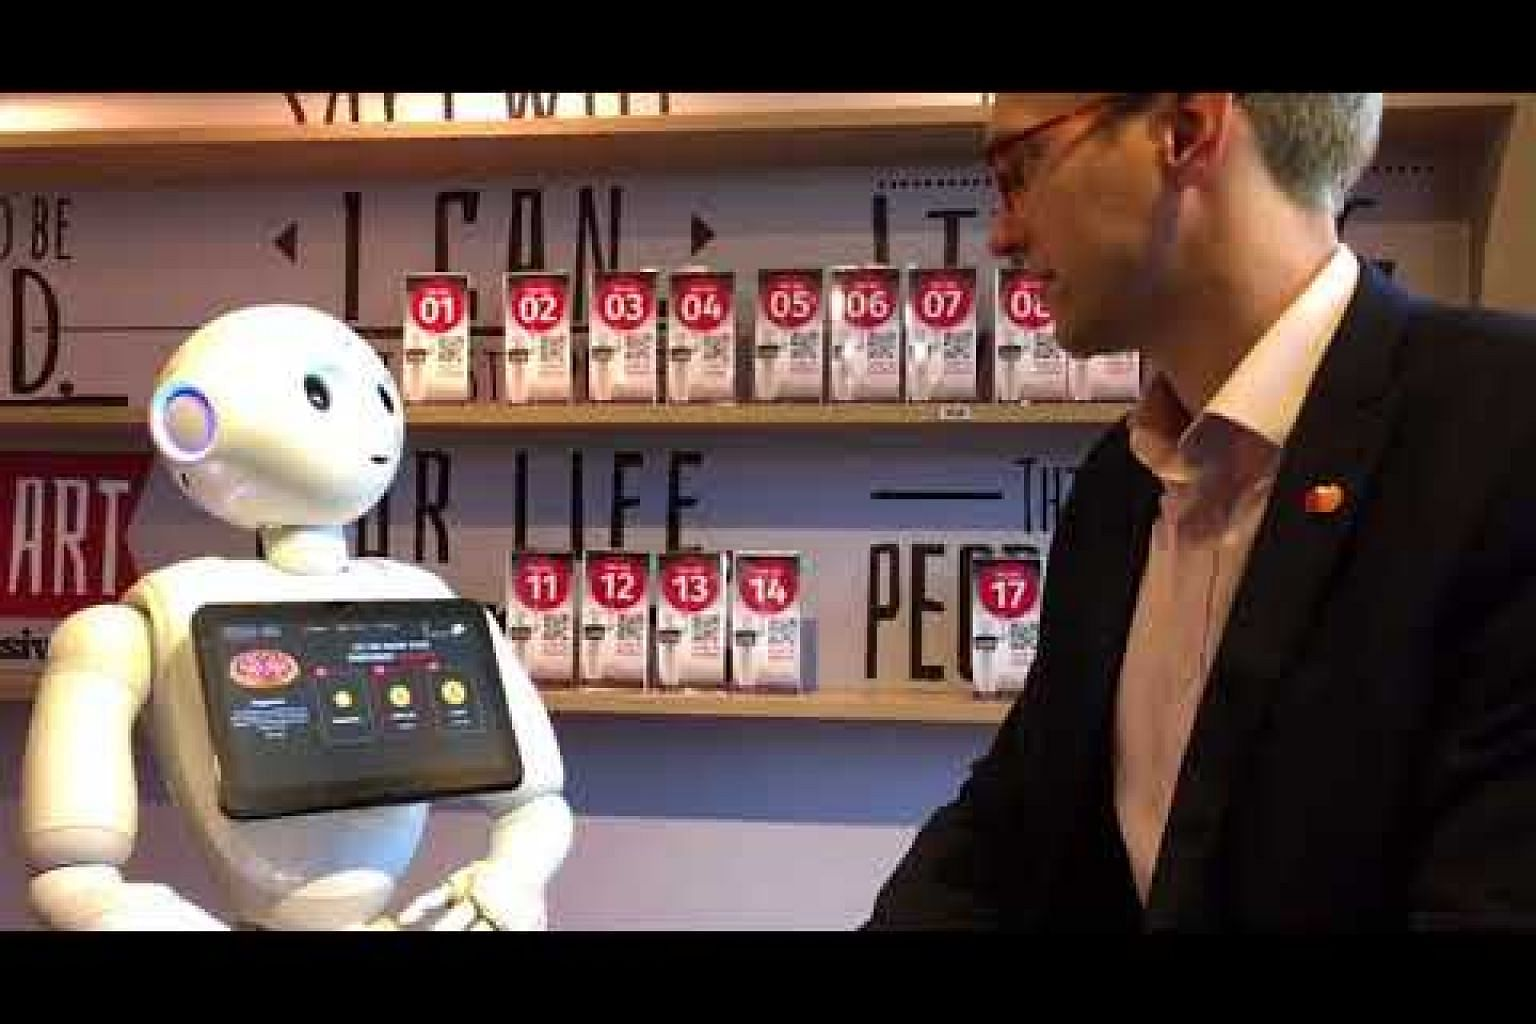 Mr Tobias Puehse orders a pizza from a humanoid robot